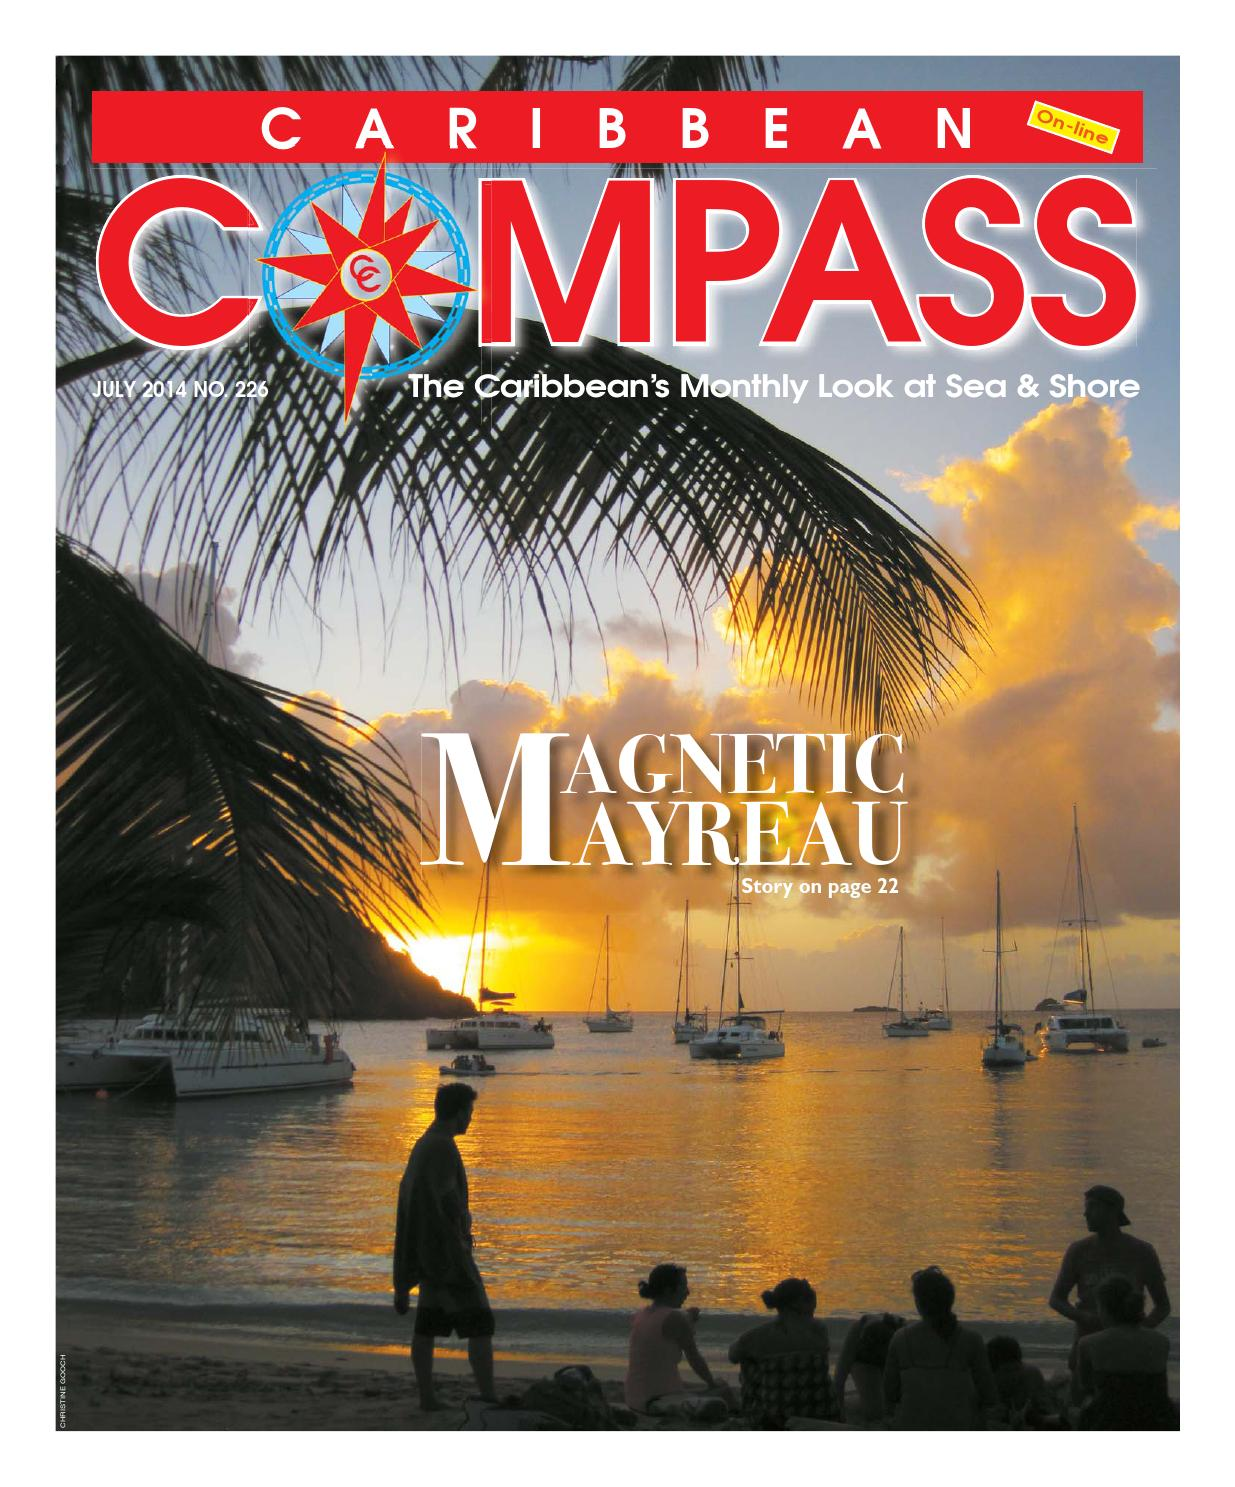 Caribbean compass yachting magazine july 2014 by compass caribbean compass yachting magazine july 2014 by compass publishing issuu fandeluxe Gallery